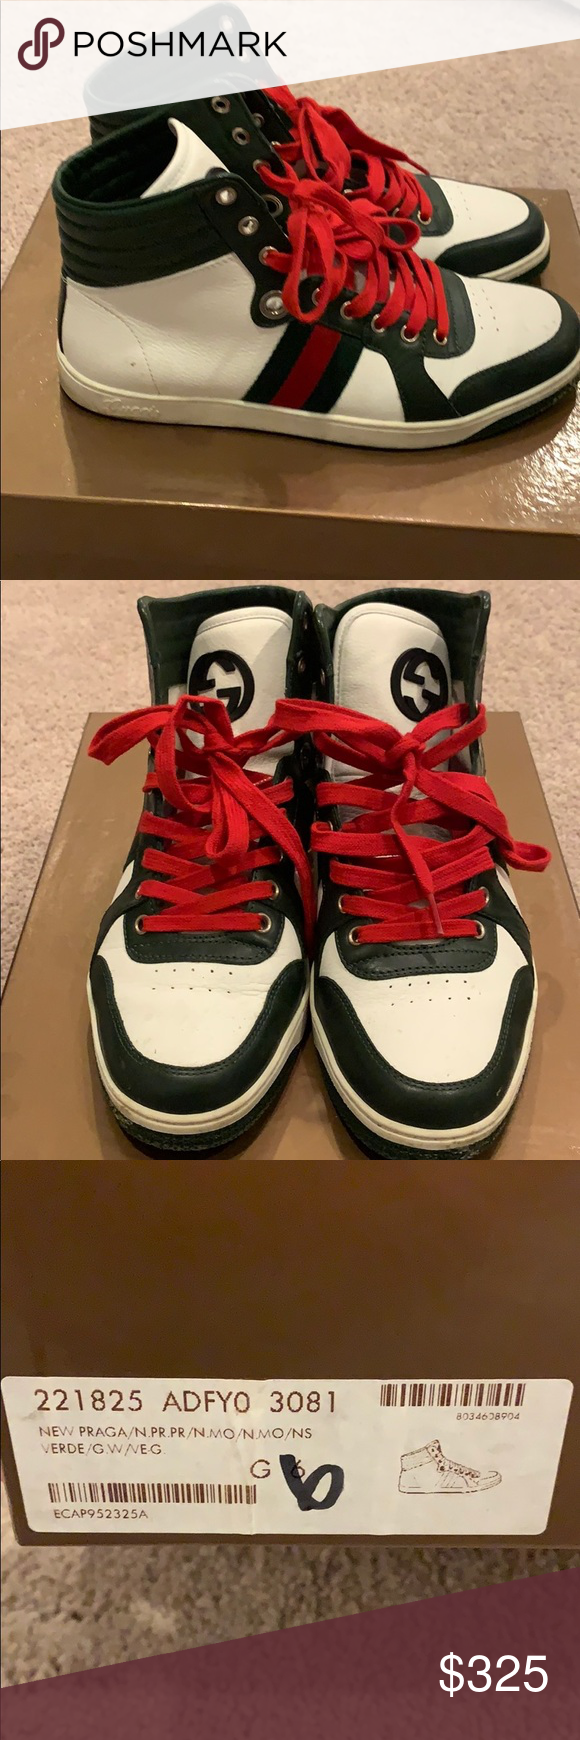 11223e5f717 Authentic Gucci sneakers Dust bags